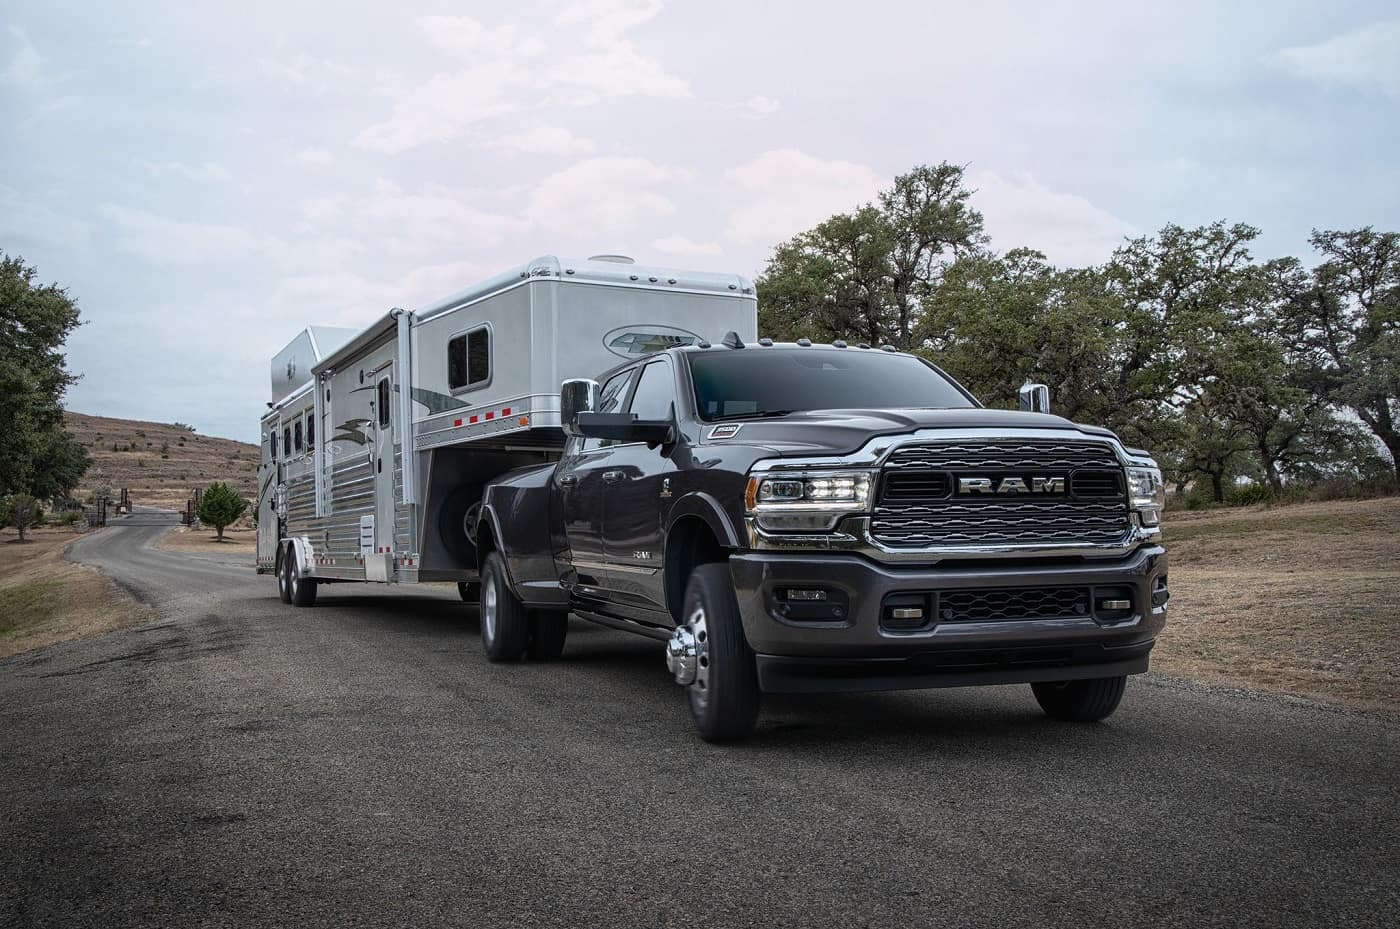 2019 RAM 3500 Review For DuPage County, IL